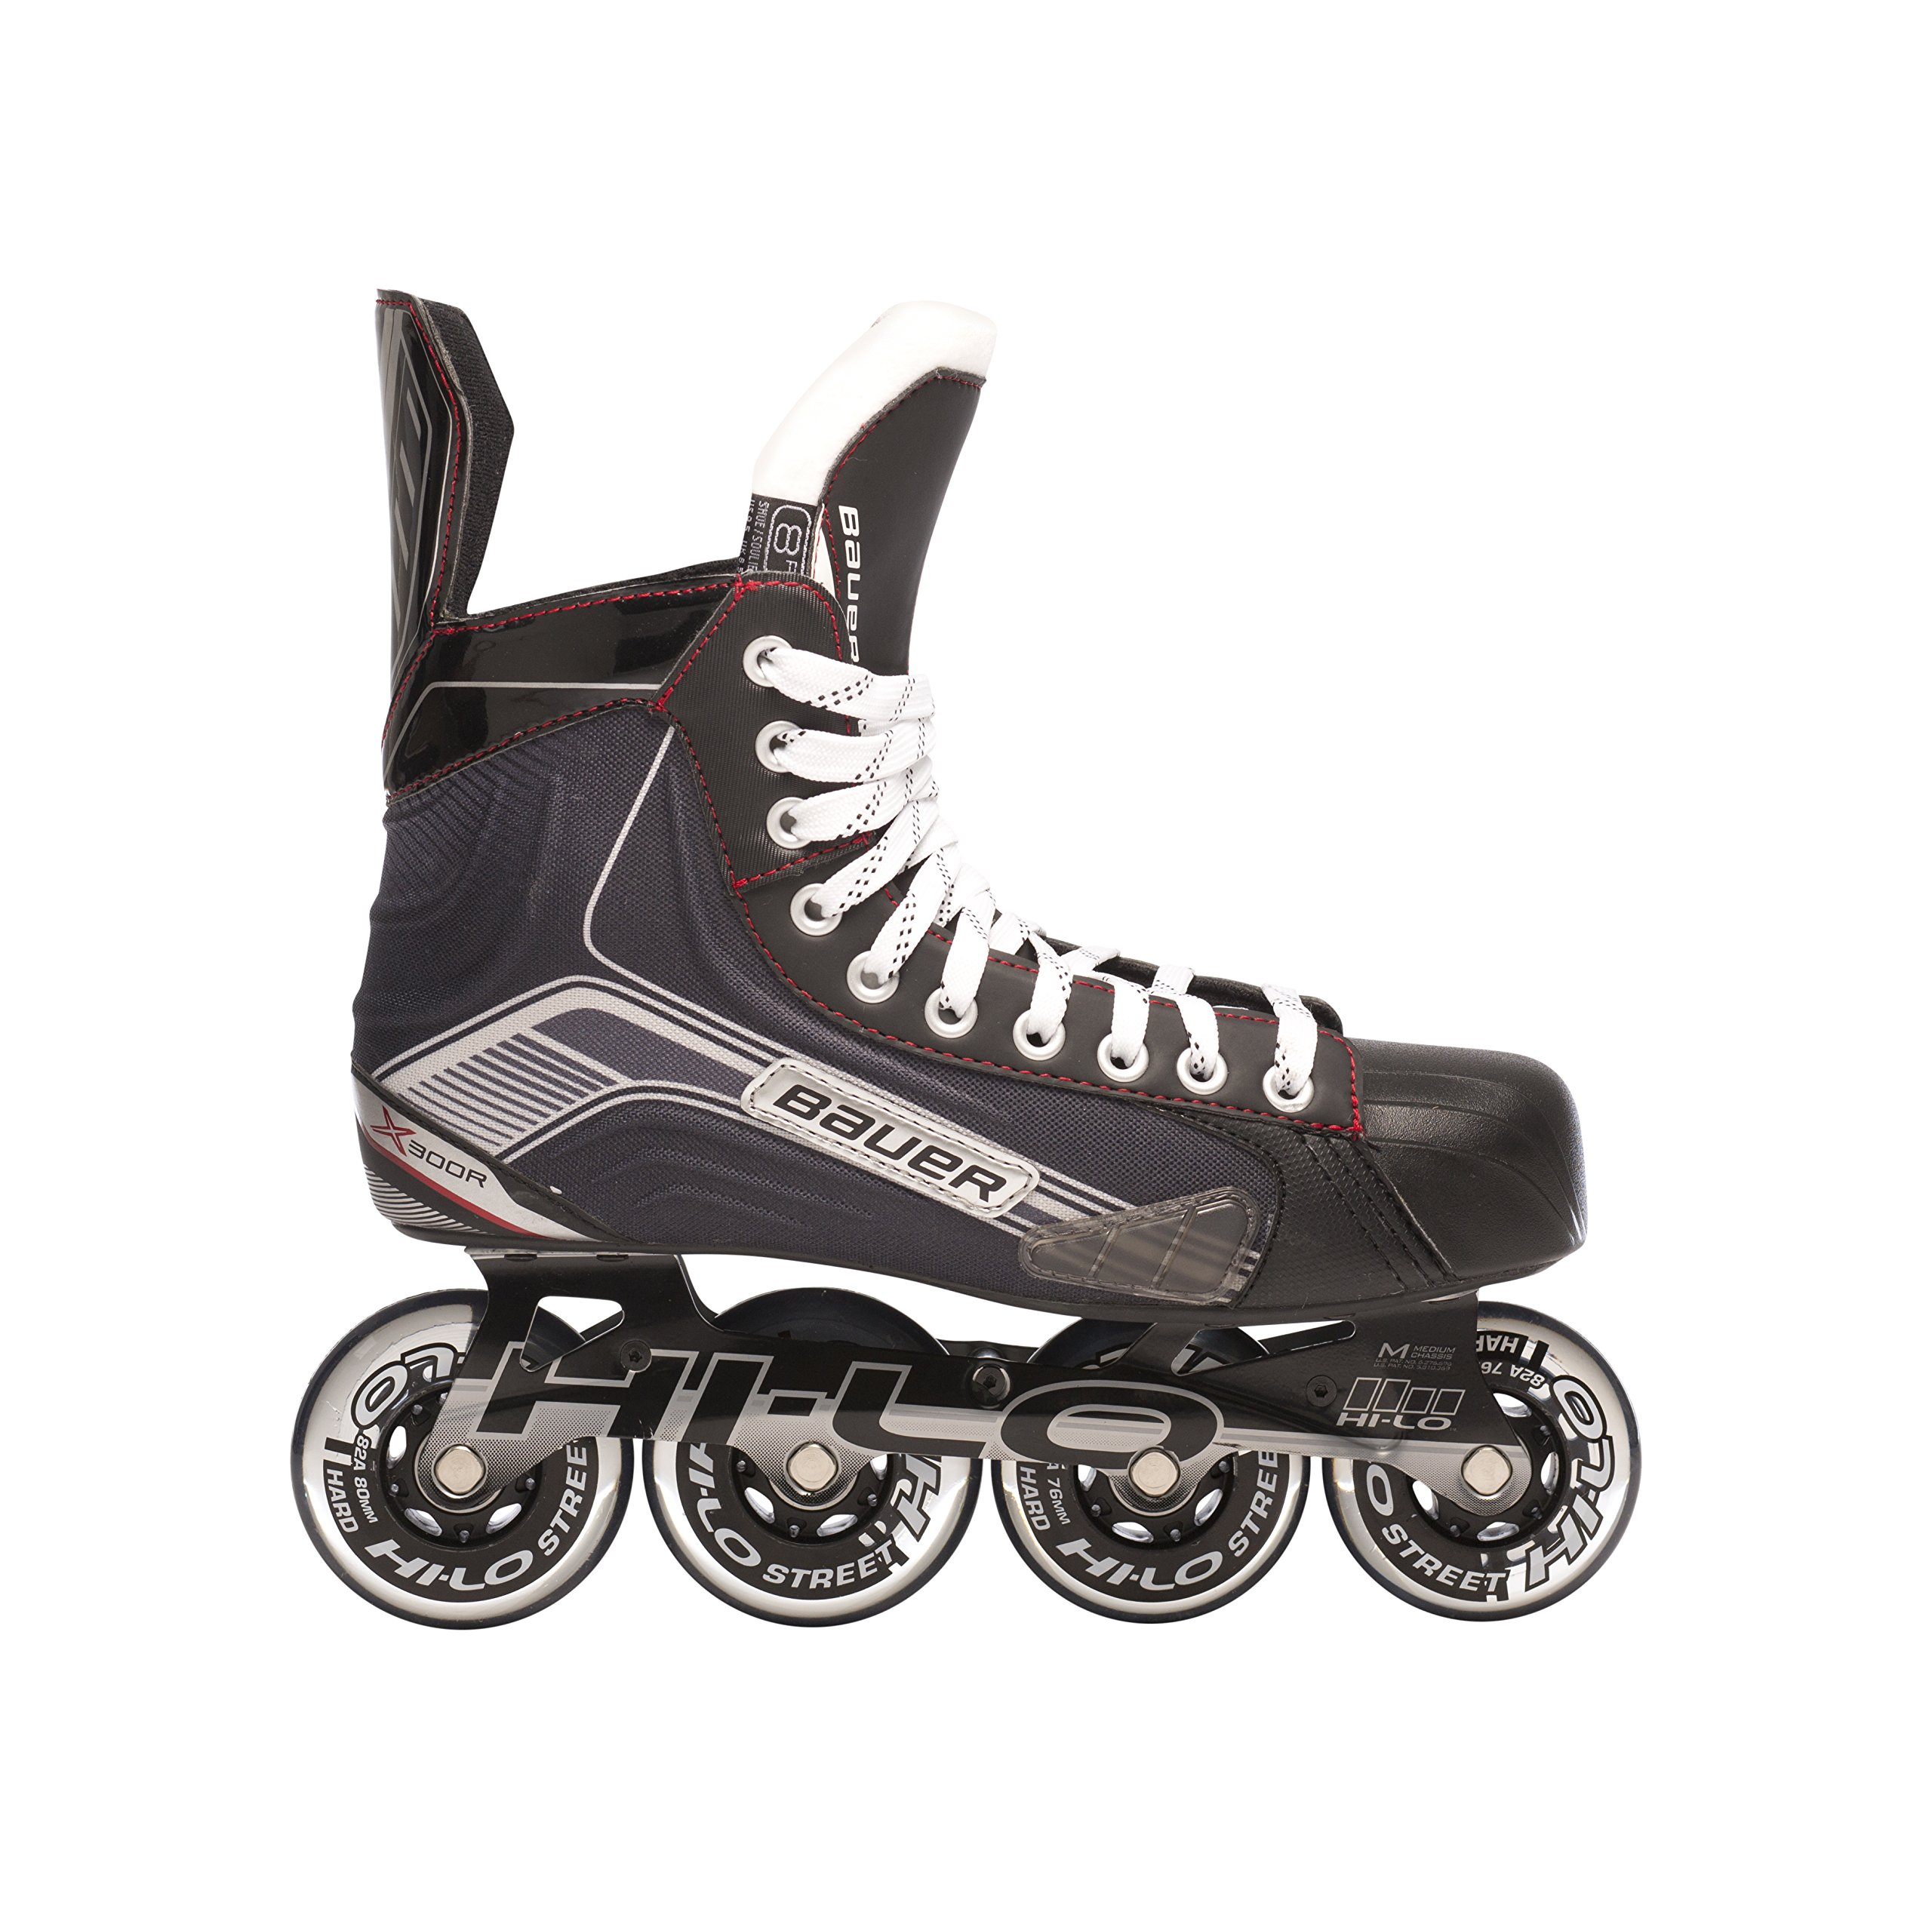 Bauer 1047269 Junior Vapor X300R Roller Hockey Skate, Black, Size 1 by Bauer